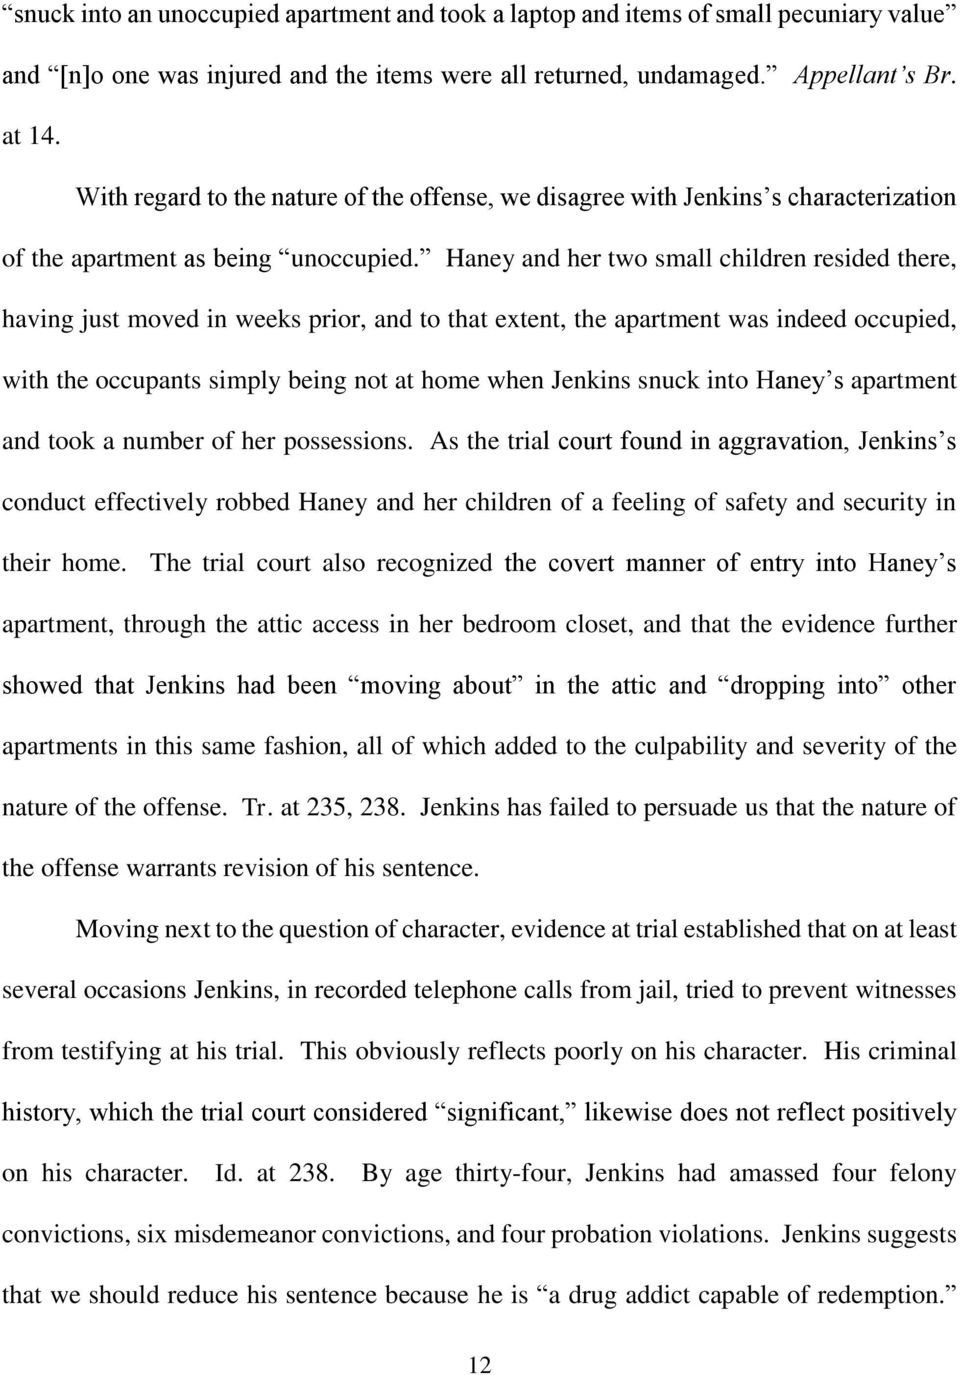 Haney and her two small children resided there, having just moved in weeks prior, and to that extent, the apartment was indeed occupied, with the occupants simply being not at home when Jenkins snuck